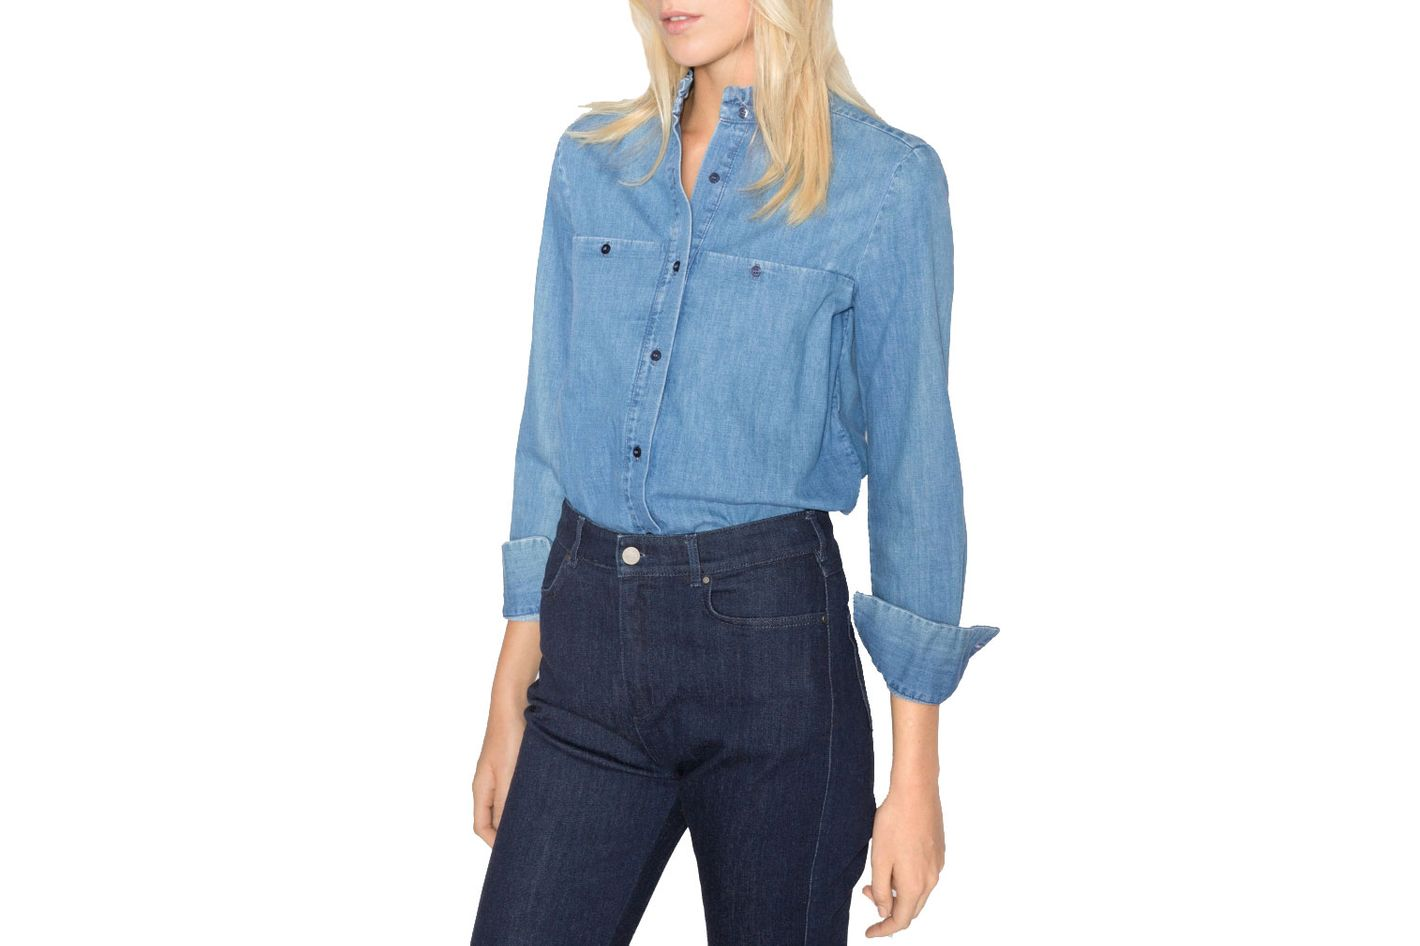 & Other Stories Ruffle Collar Chambray Shirt